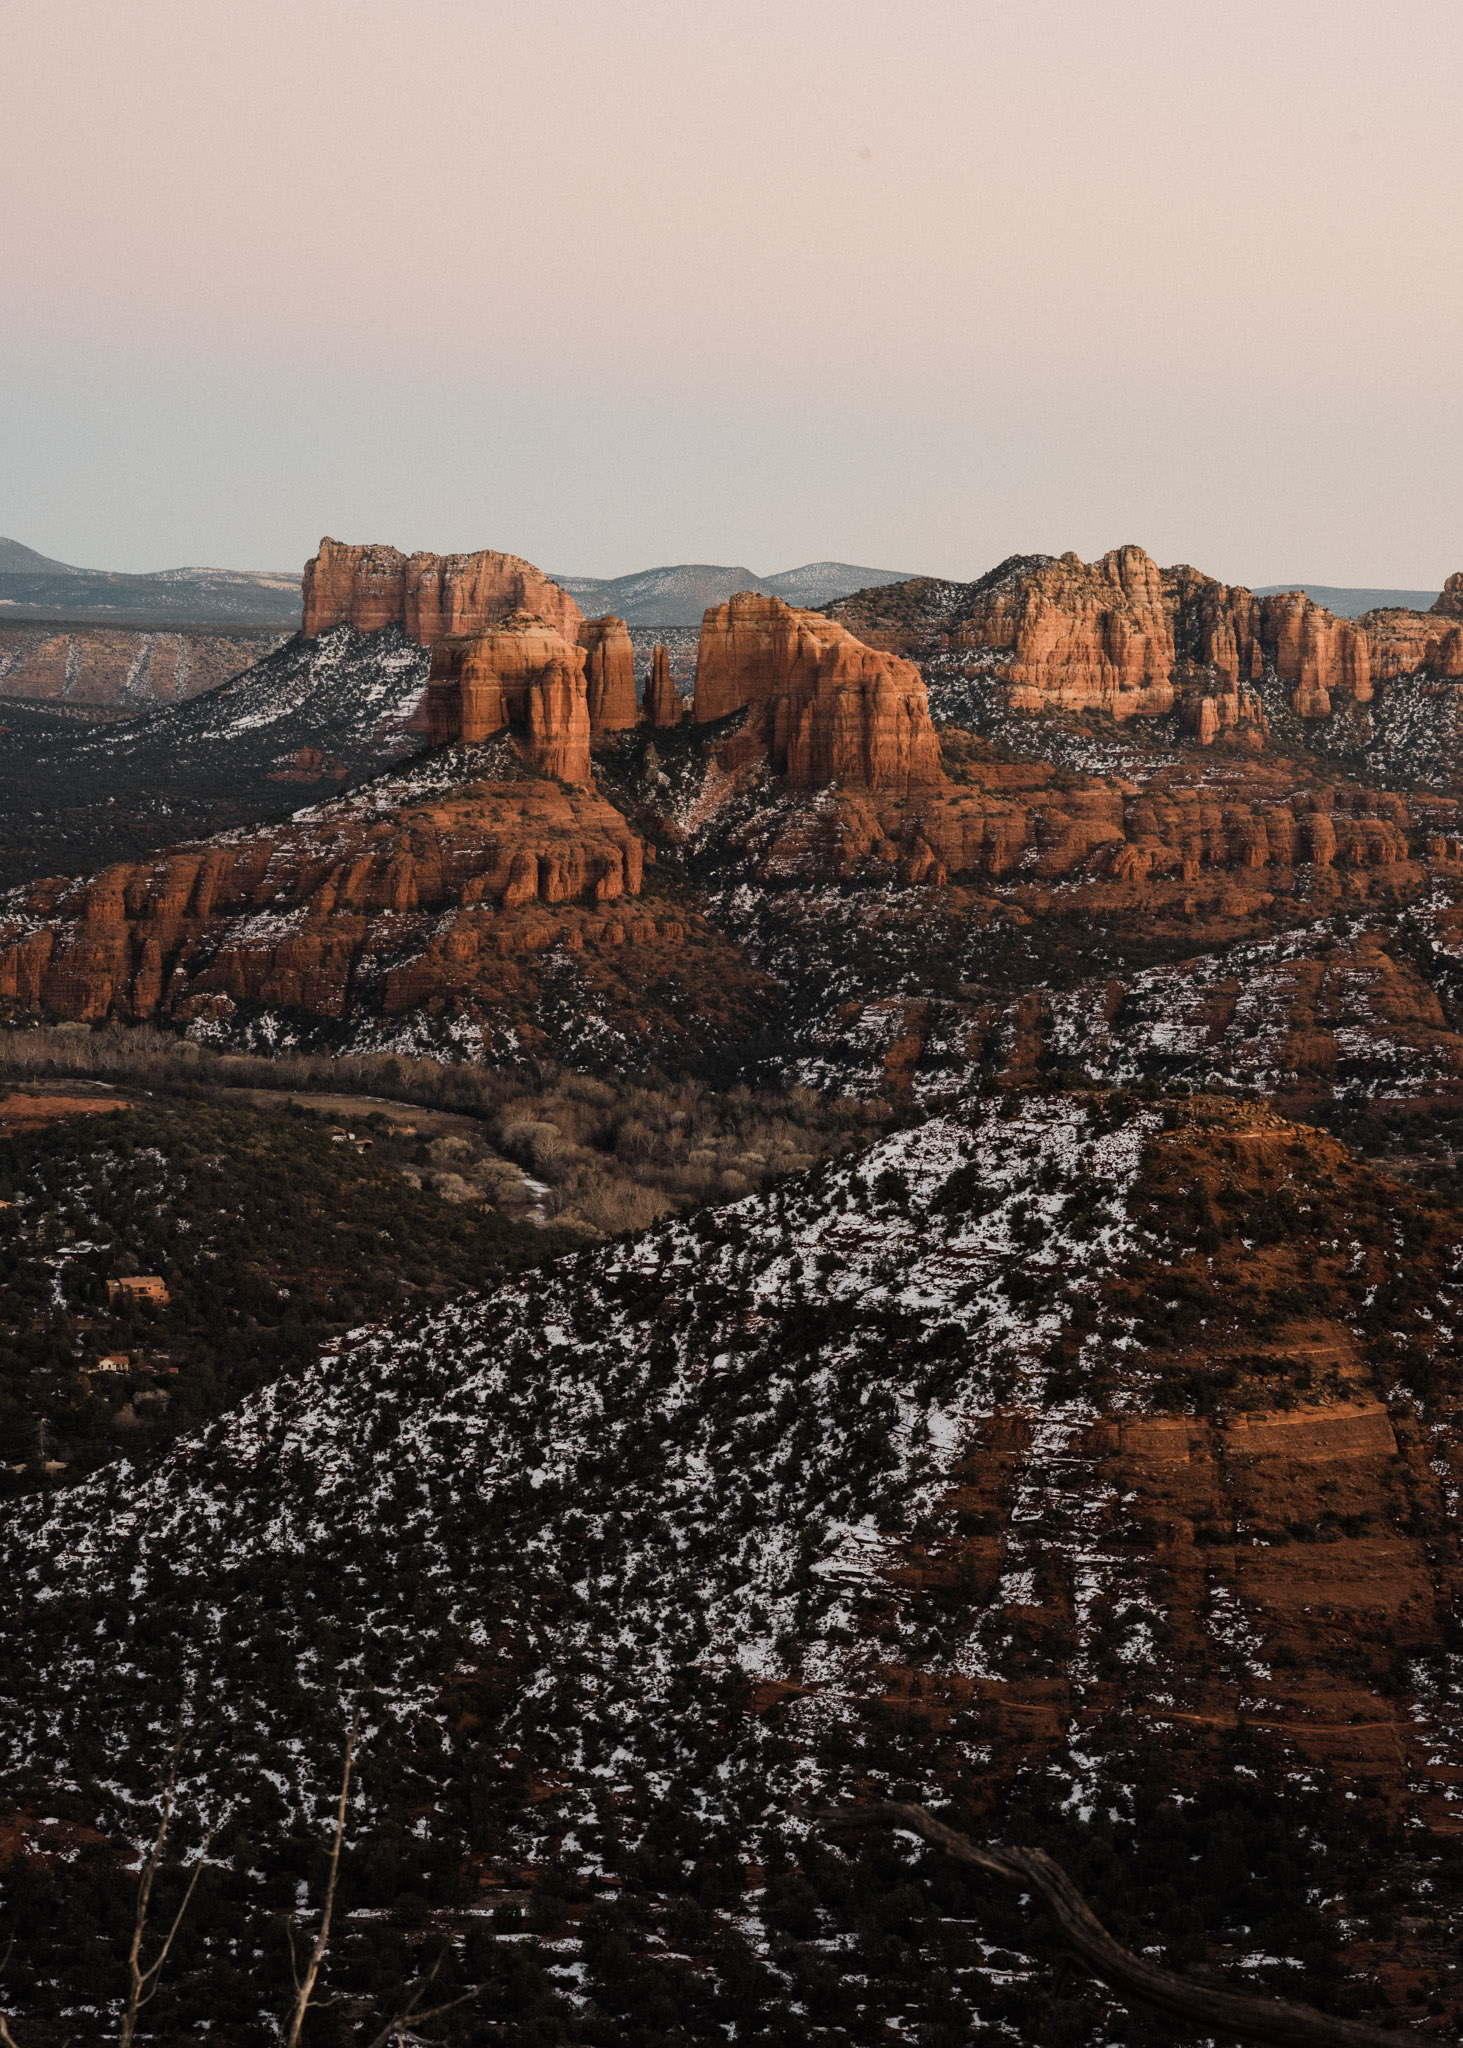 Tanner Burge Photography, Sedona Arizona, The Grand Canyon, Page AZ, Travel Blog, Adventure Photography, Snowy Landscapes, Winter in the Desert, Winter at the Grand Canyon, Grand Canyon Travel Guide, Sedona Travel Guide, Page AZ Travel Guide,  National Park Photography, South Rim of the Grand Canyon, Snow at the Grand Canyon, Snow In Arizona, Arizona Hiking, Red Rocks State Park, Schuerman Mountain